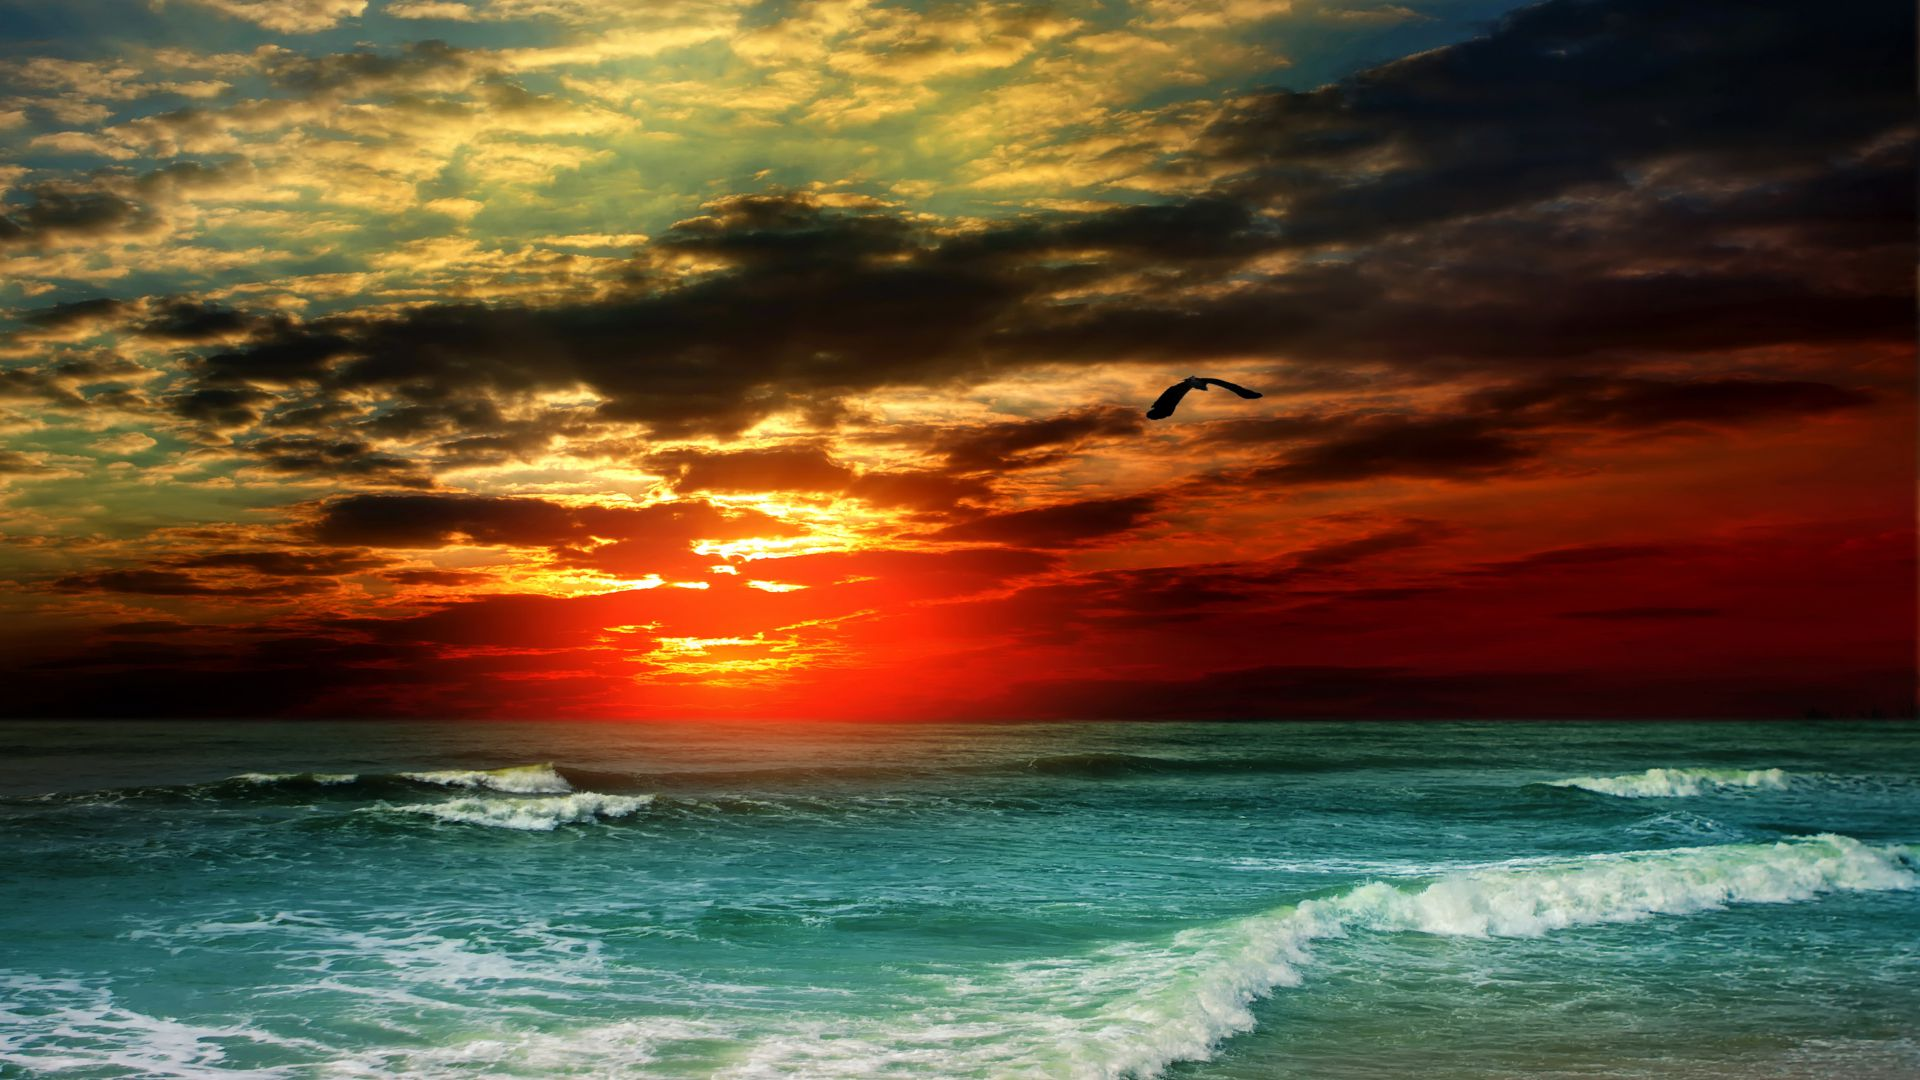 Wallpaper Sea, 5k, 4k wallpaper, 8k, ocean, sunset, shore, clouds, Nature #5406